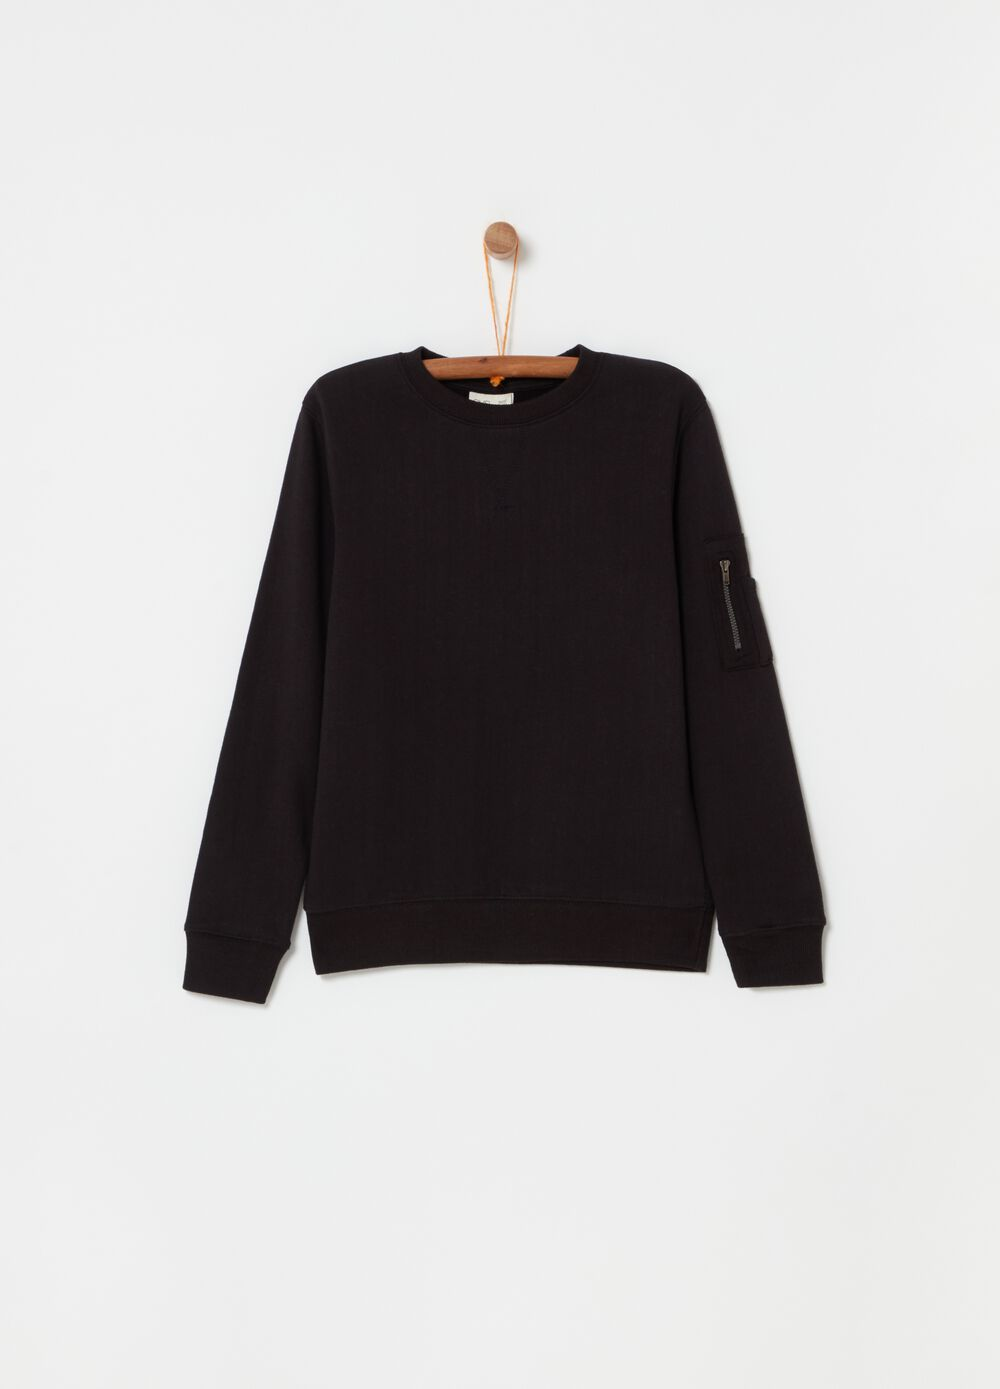 100% cotton crew-neck sweatshirt with pocket